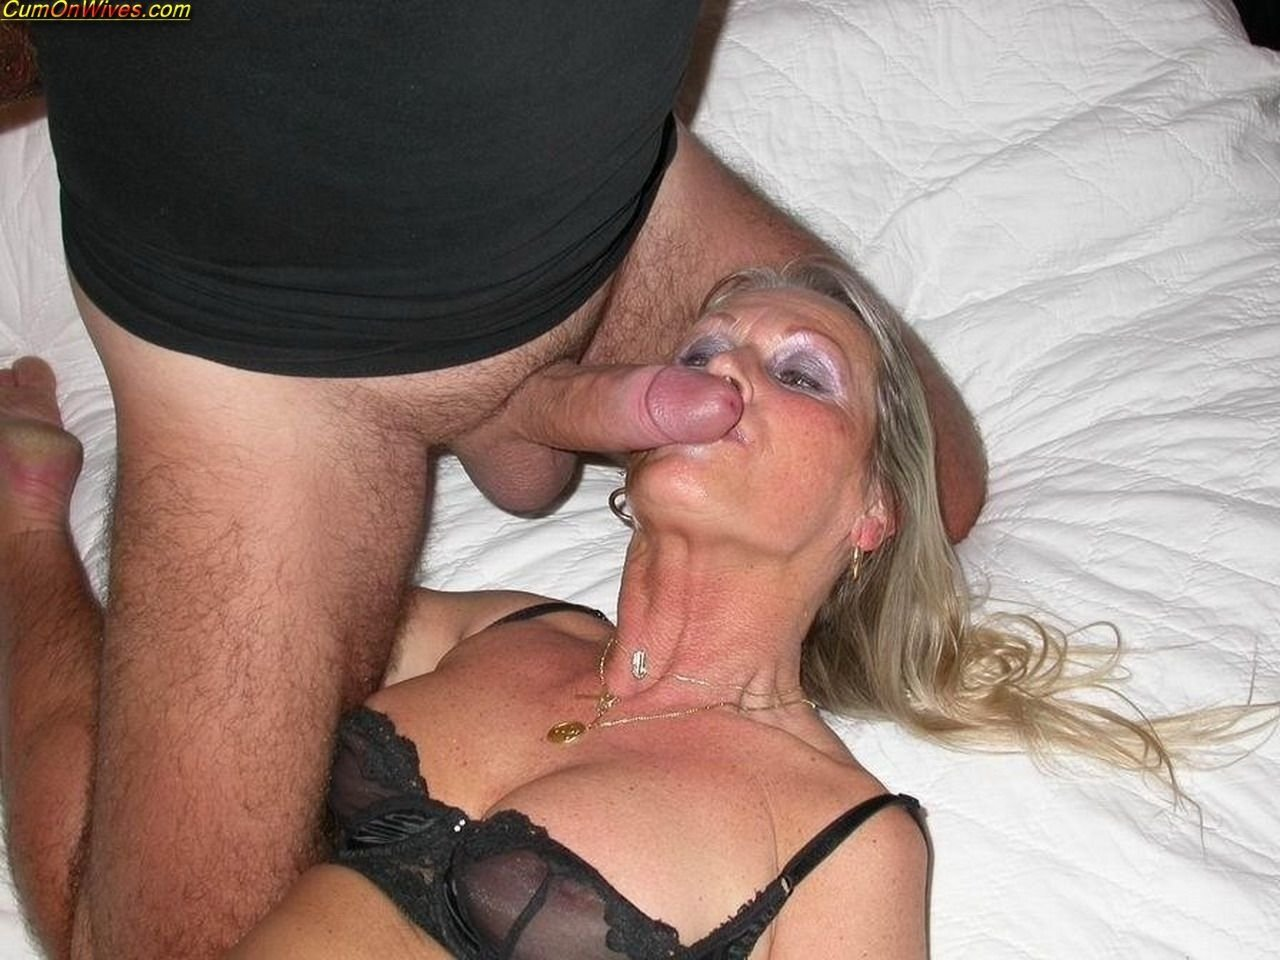 Blonde milf dirty talk #8